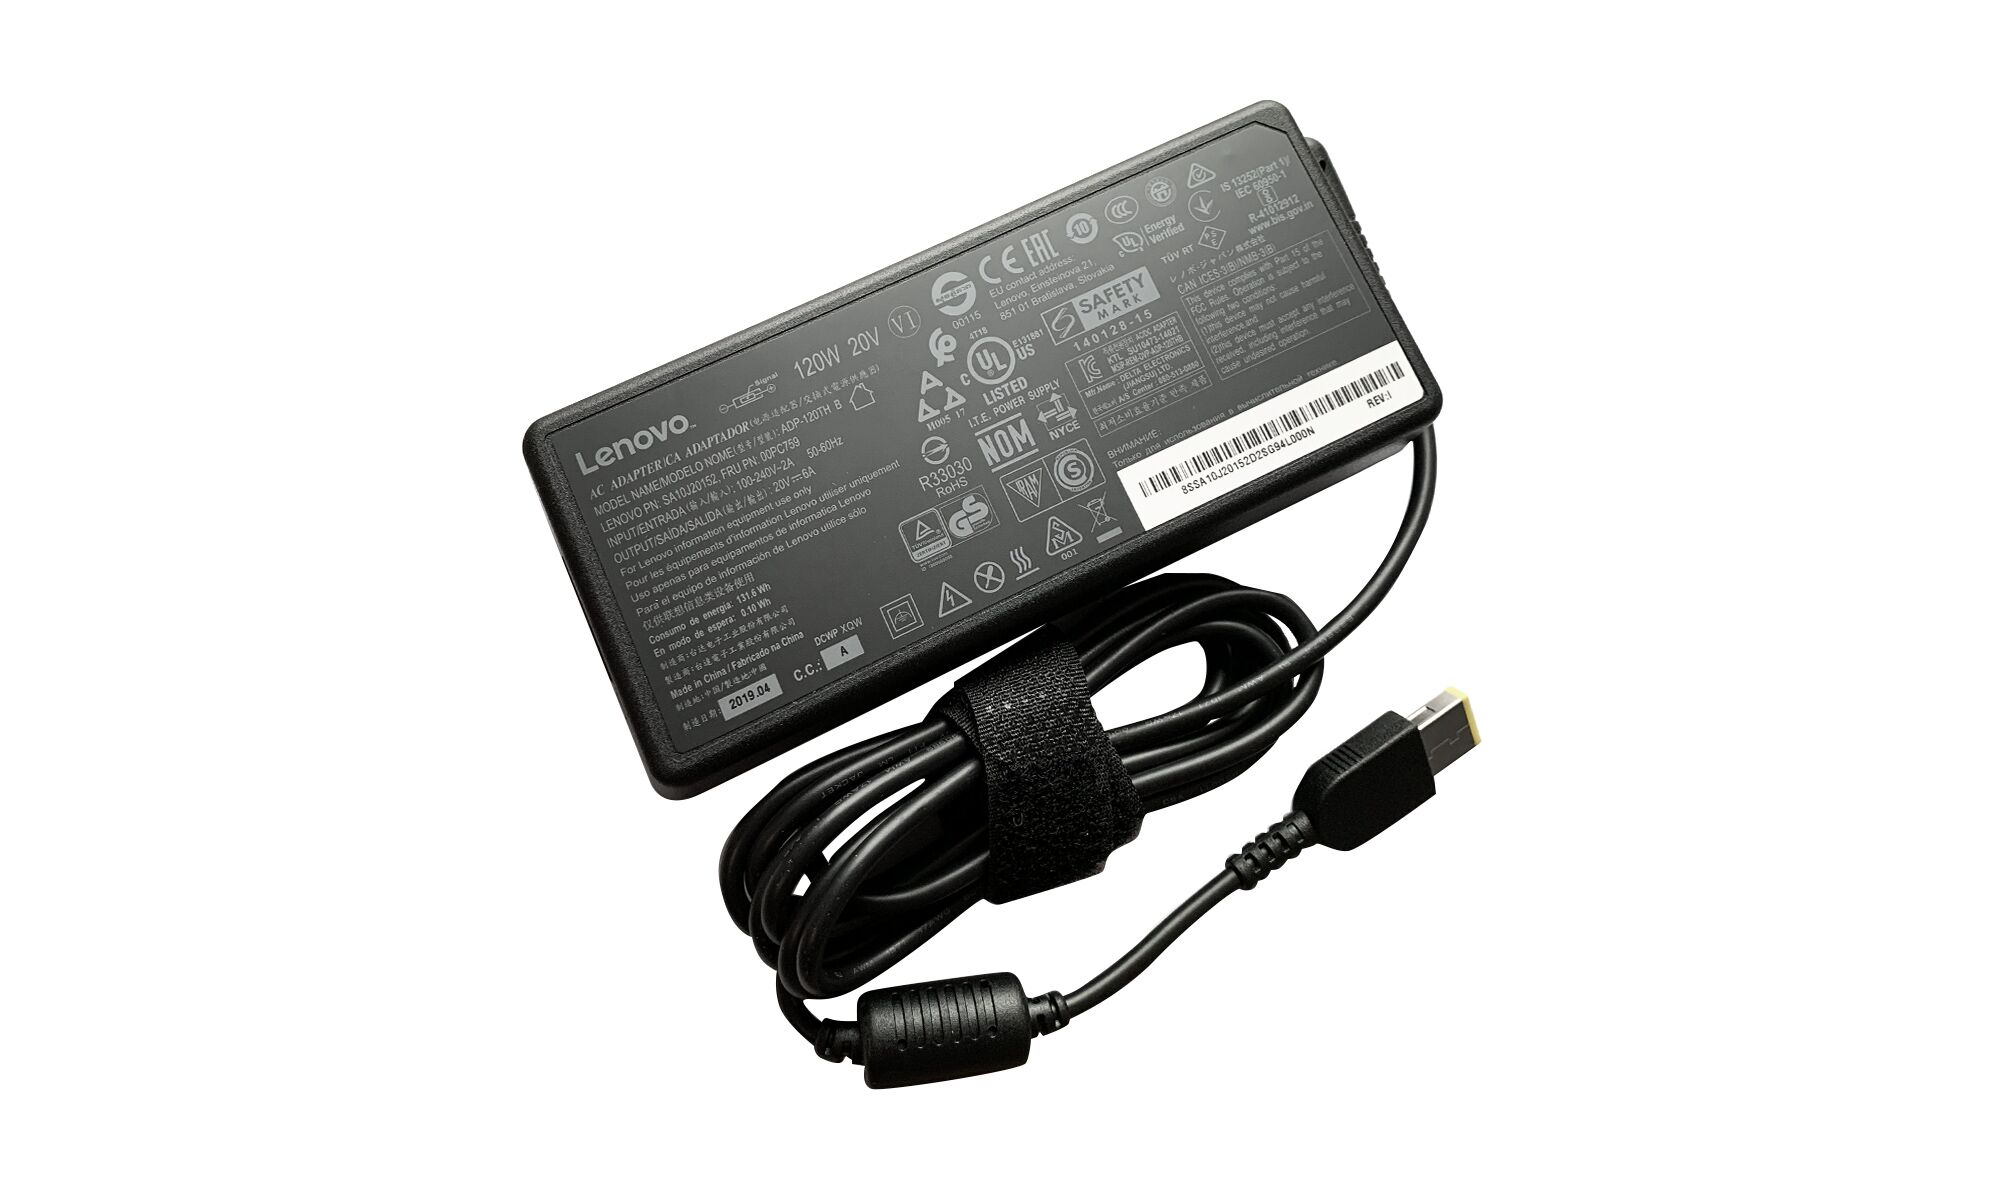 Alimentator original All-in-One Lenovo V330-20ICB, V530-22ICB, V530-24ICB, 20V 6A 120W, cod 00PC759